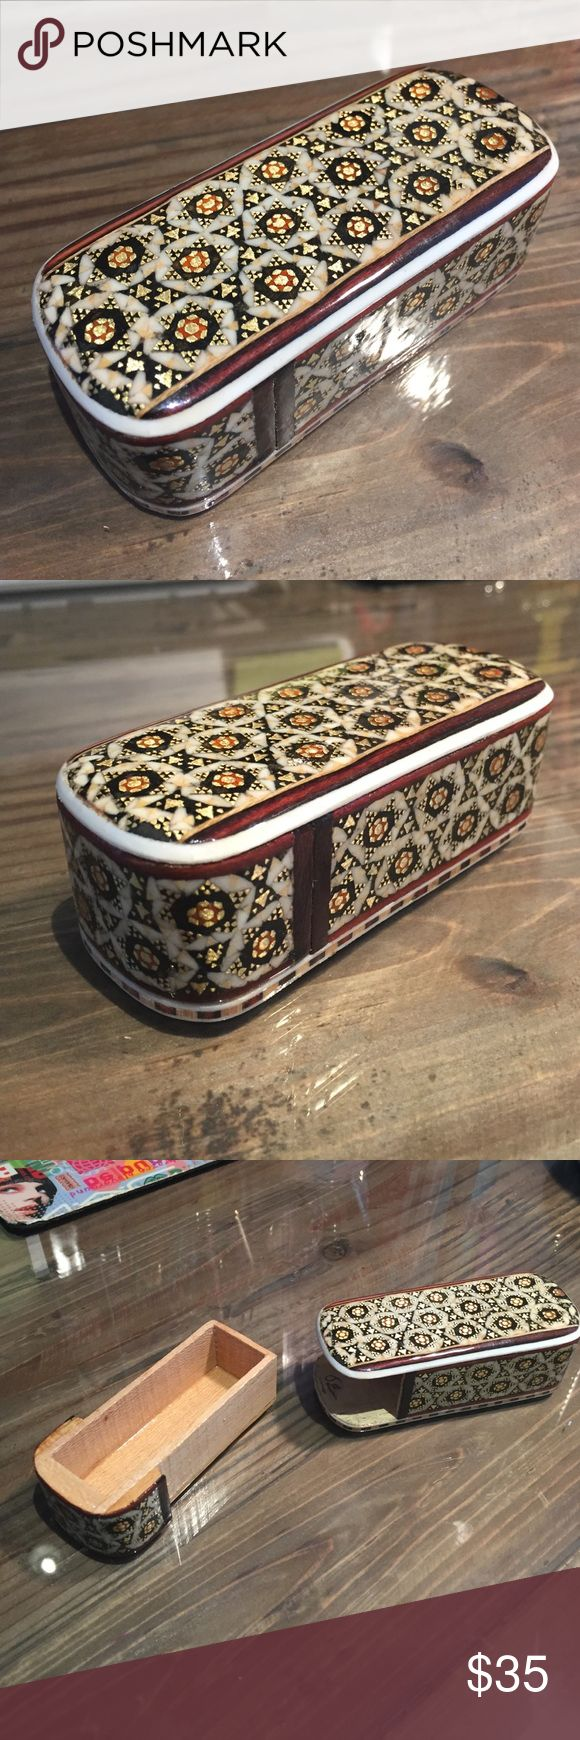 Bobby Pin/Jewelry Holder for Purse! Bobby Pin/Jewelry Holder for Purse! Beautiful middle eastern design, given to me by a friend who recently visited Iran. I have two already! Very gorgeous wood patterns, a work of art. Used by ladies to store jewelry, tissues, make up, Bobby pins, and even q tips in your handbag to go! Looks like something you'd find at anthropologie or Urban outfitters. Not from urban outfitters though! Perfect for traveling! ⛵️ Urban Outfitters Accessories